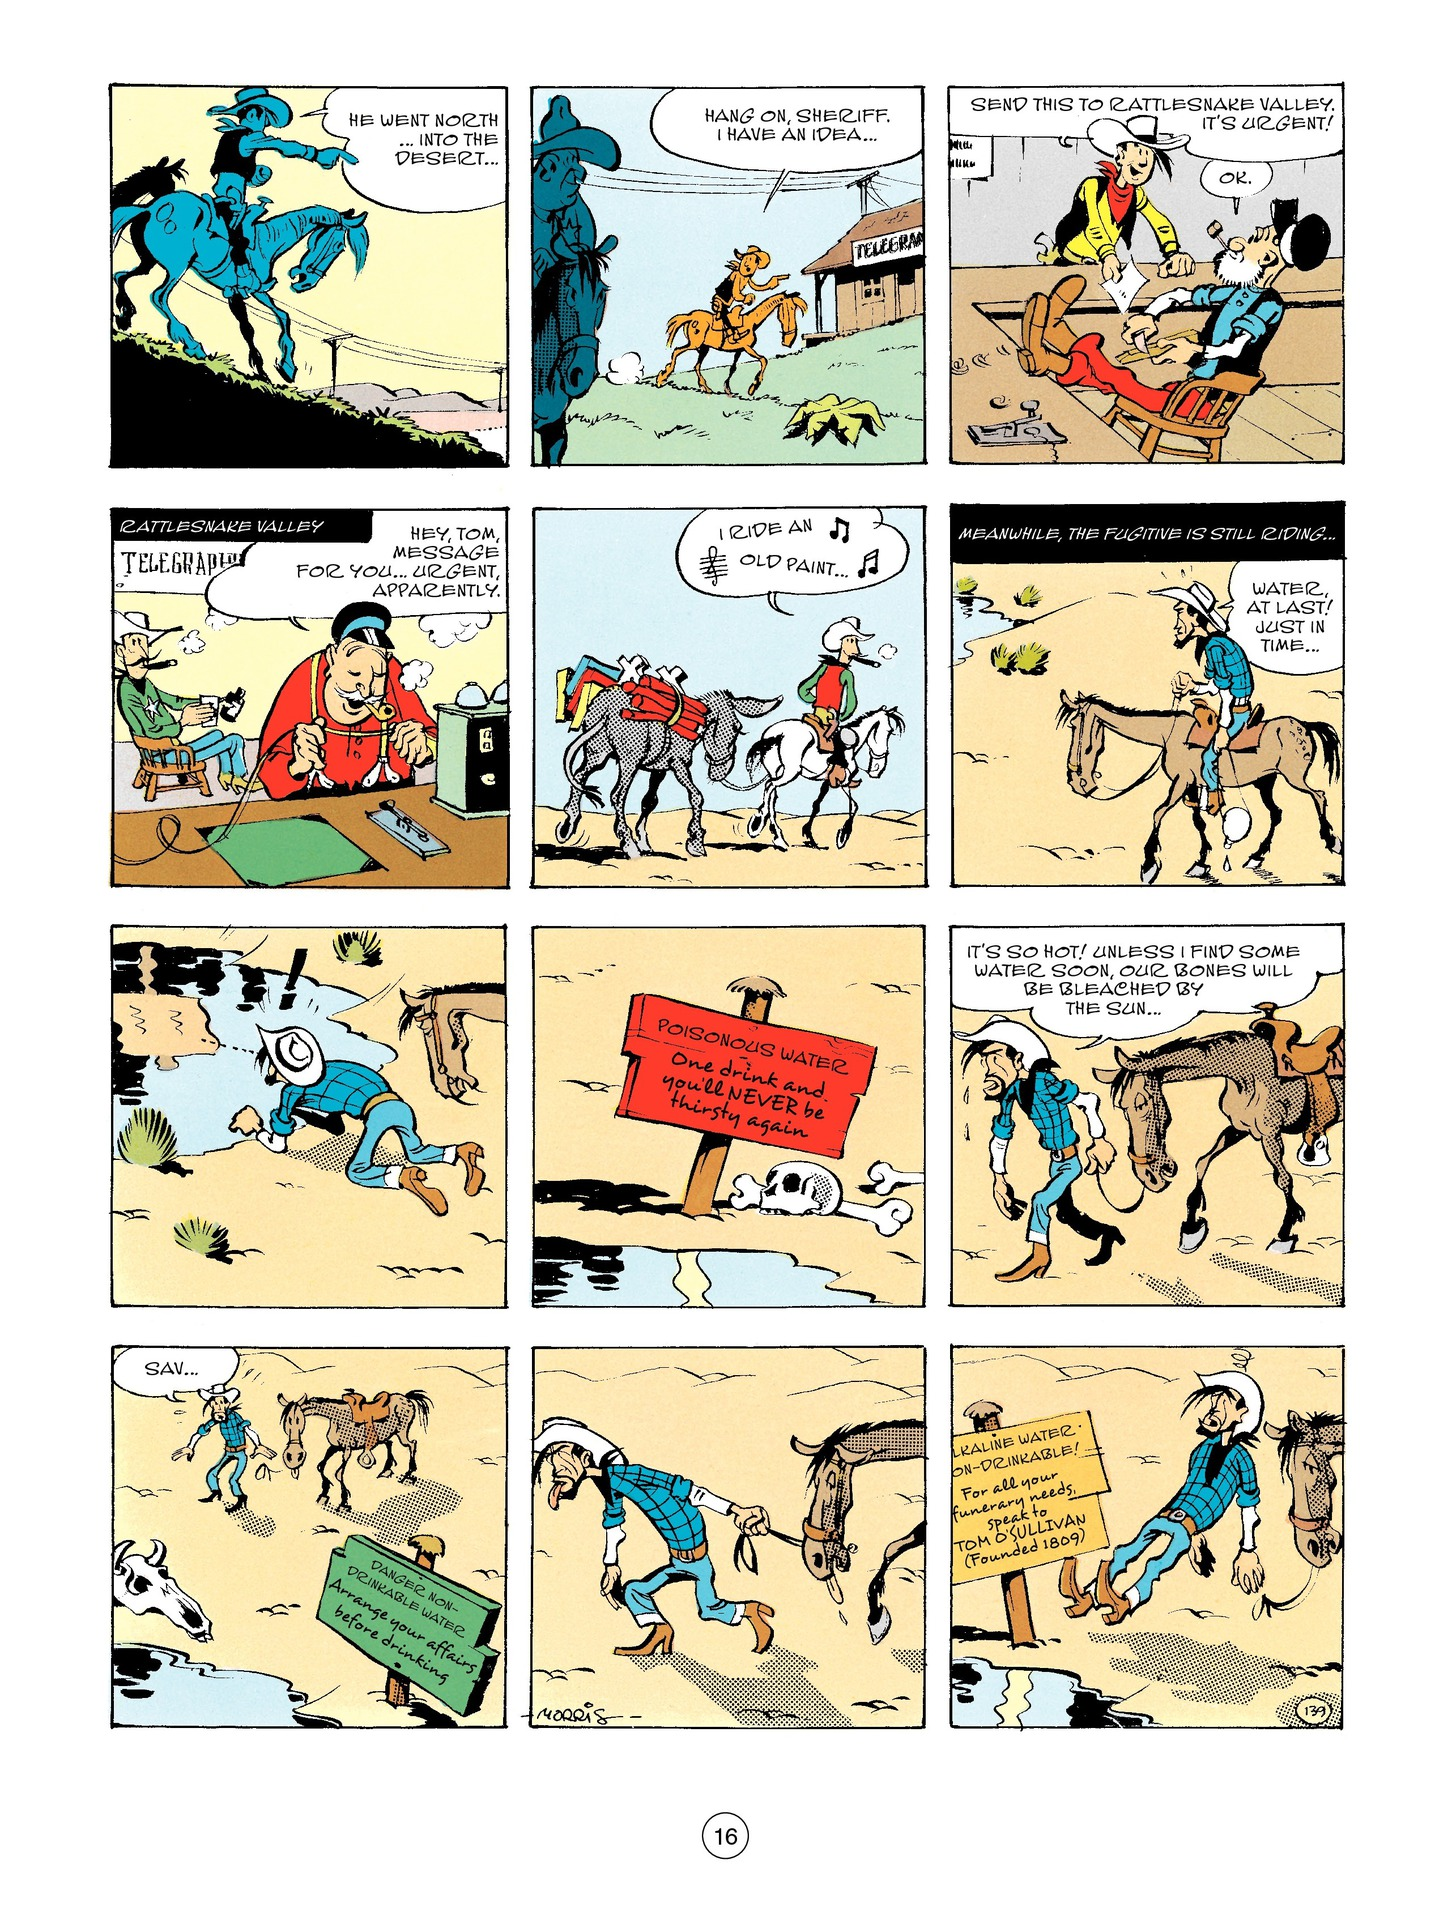 A Lucky Luke Adventure Issue 56 Viewcomic Reading Comics